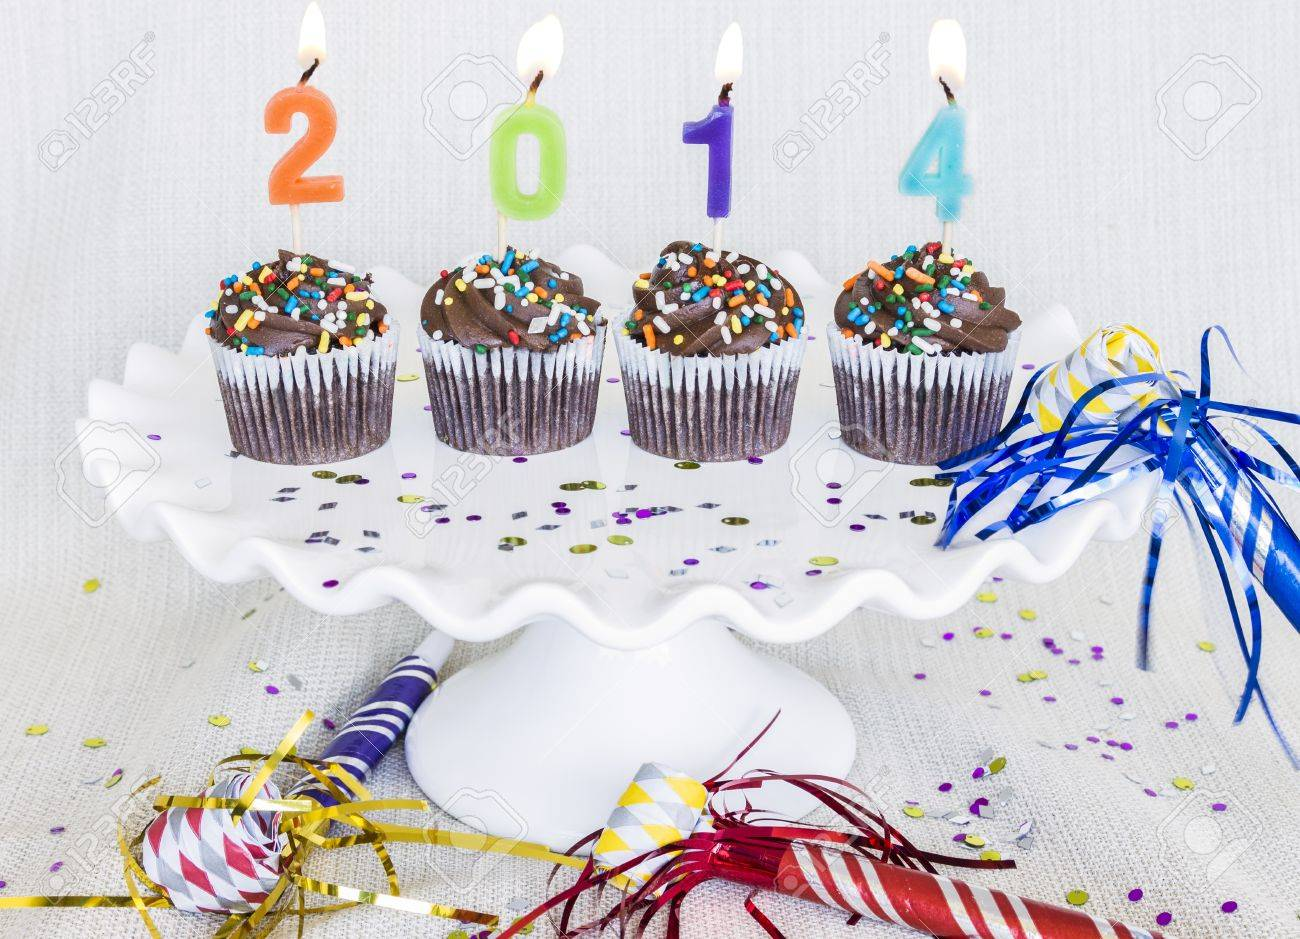 Lit Multicolored Candles That Spell 2014 In Chocolate Mini ...